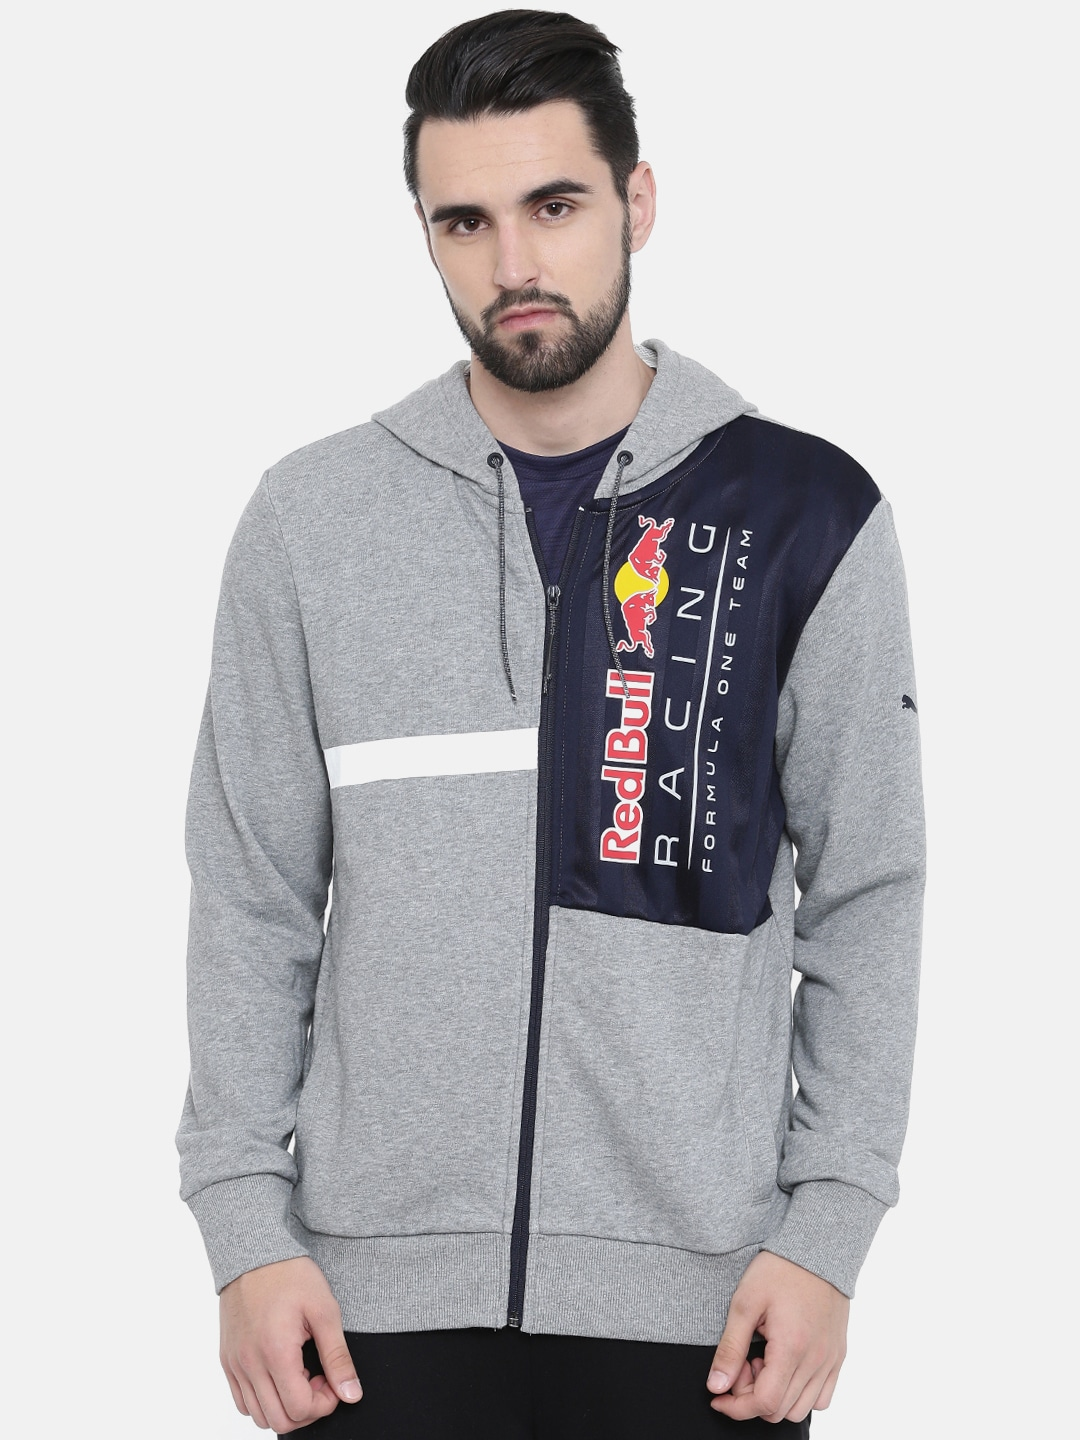 ca3af1c0aed9 Sweaters for Men - Buy Men s Sweaters Online - Myntra